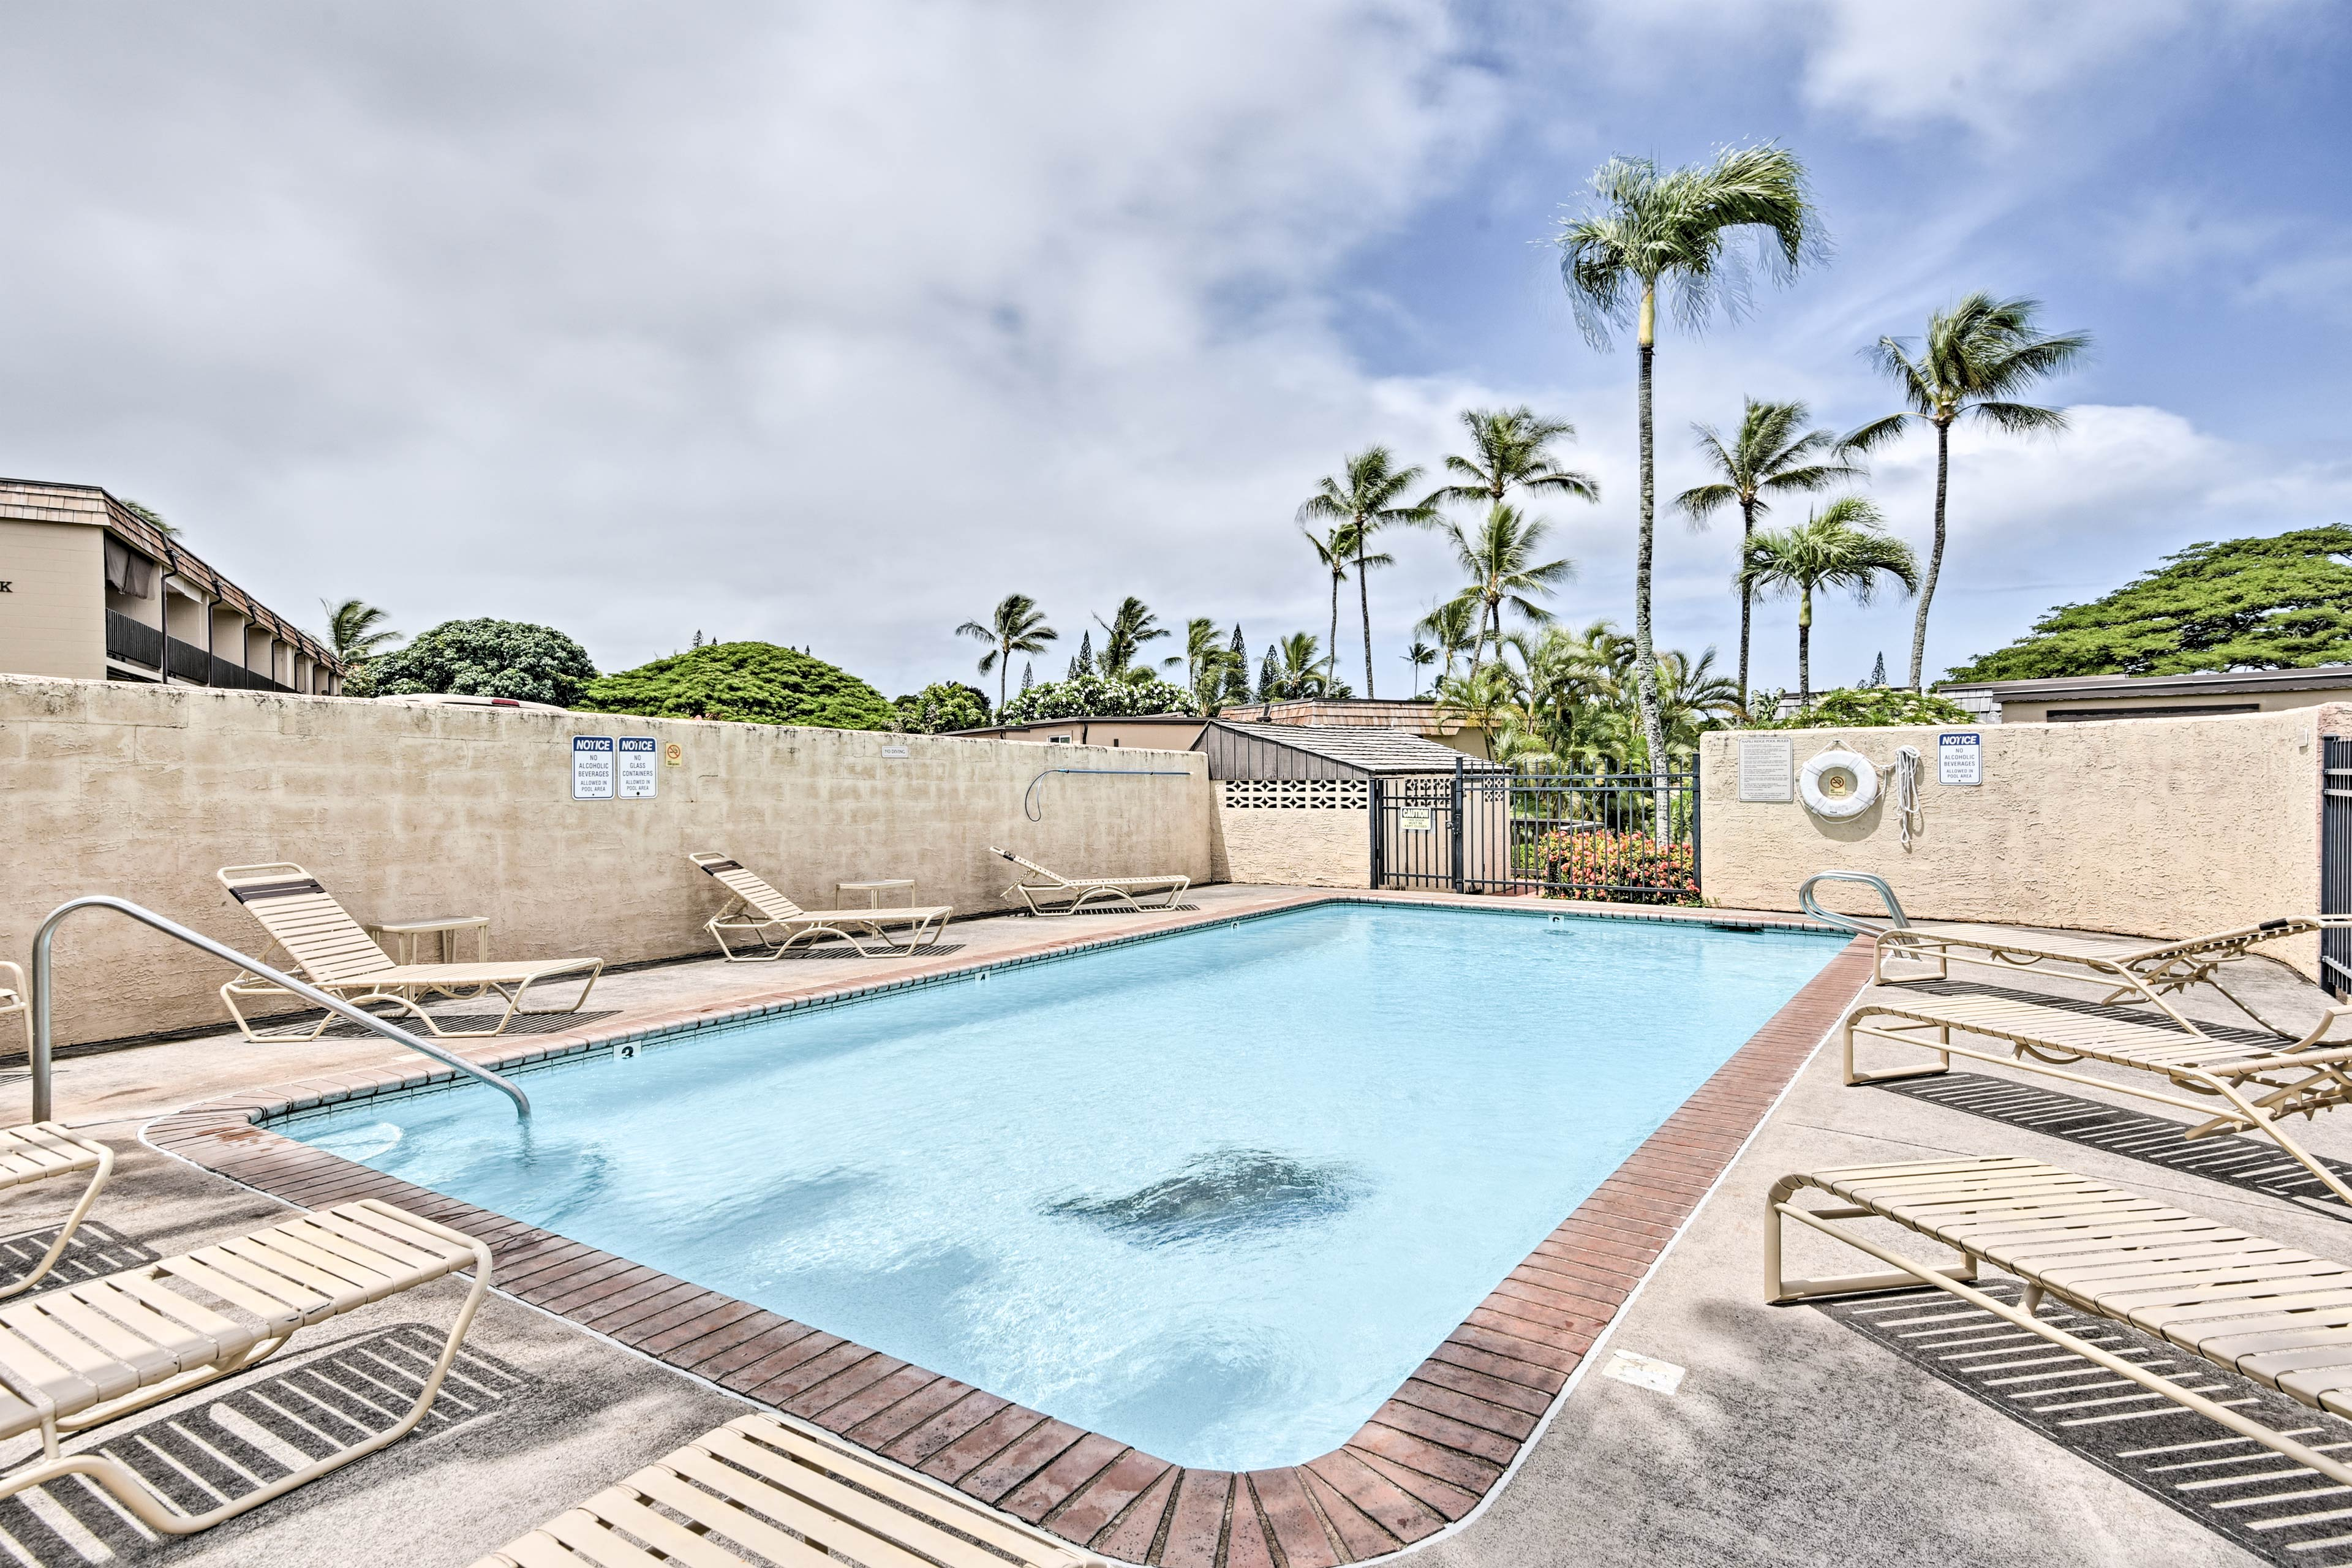 Treat yourself to a worry-free stay at this Lahaina vacation rental condo!